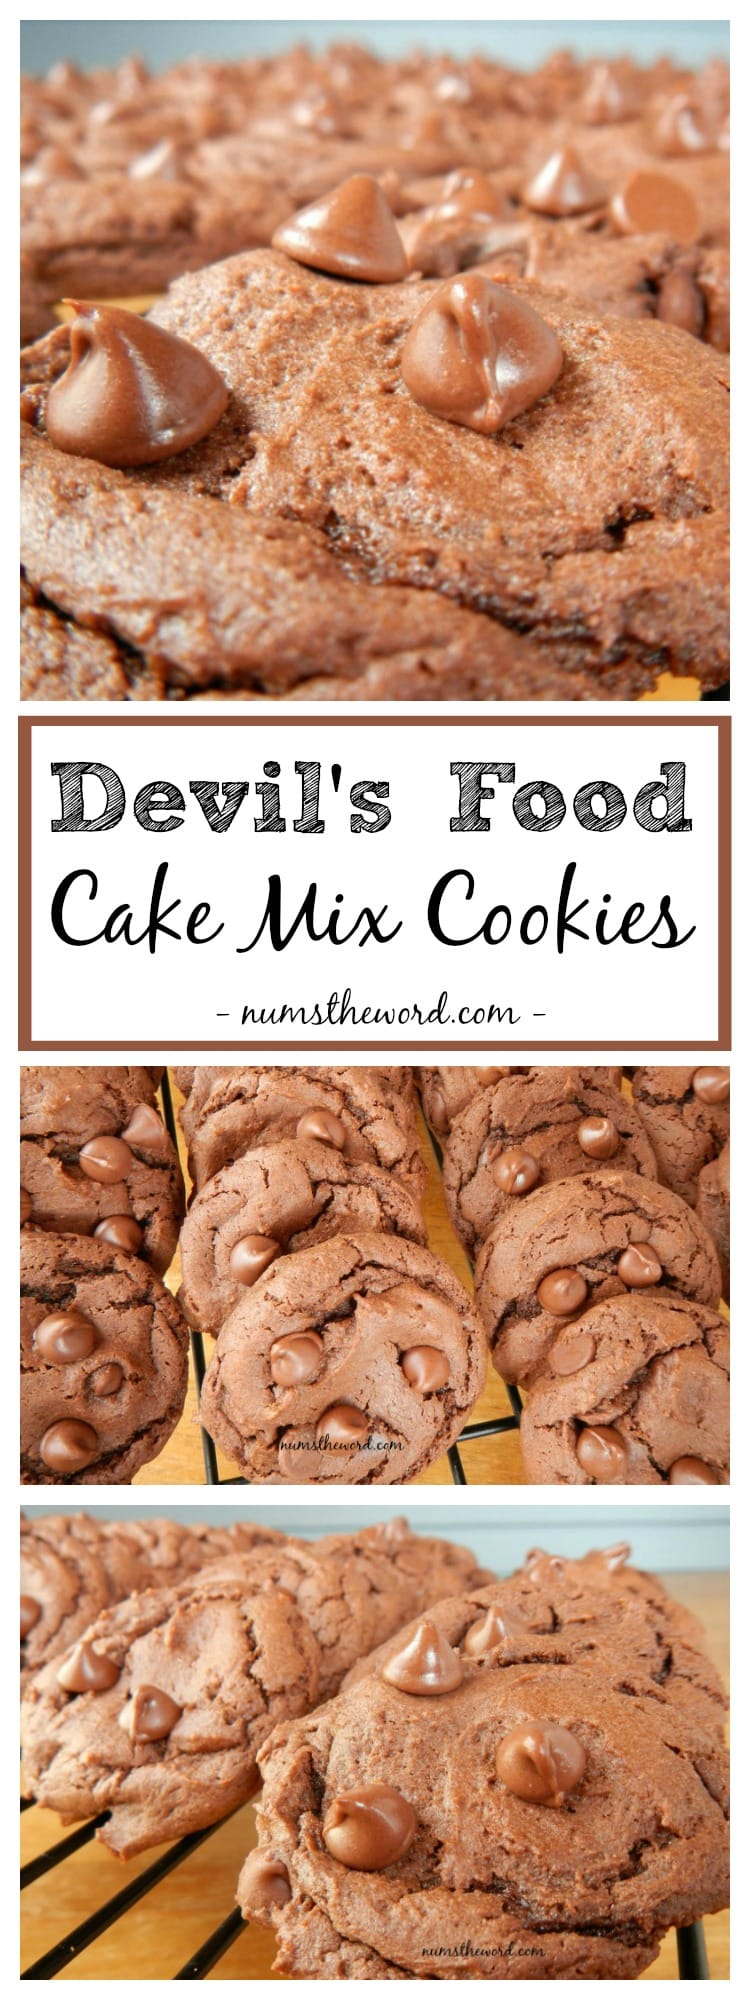 Devil's Food Cake Mix Cookies